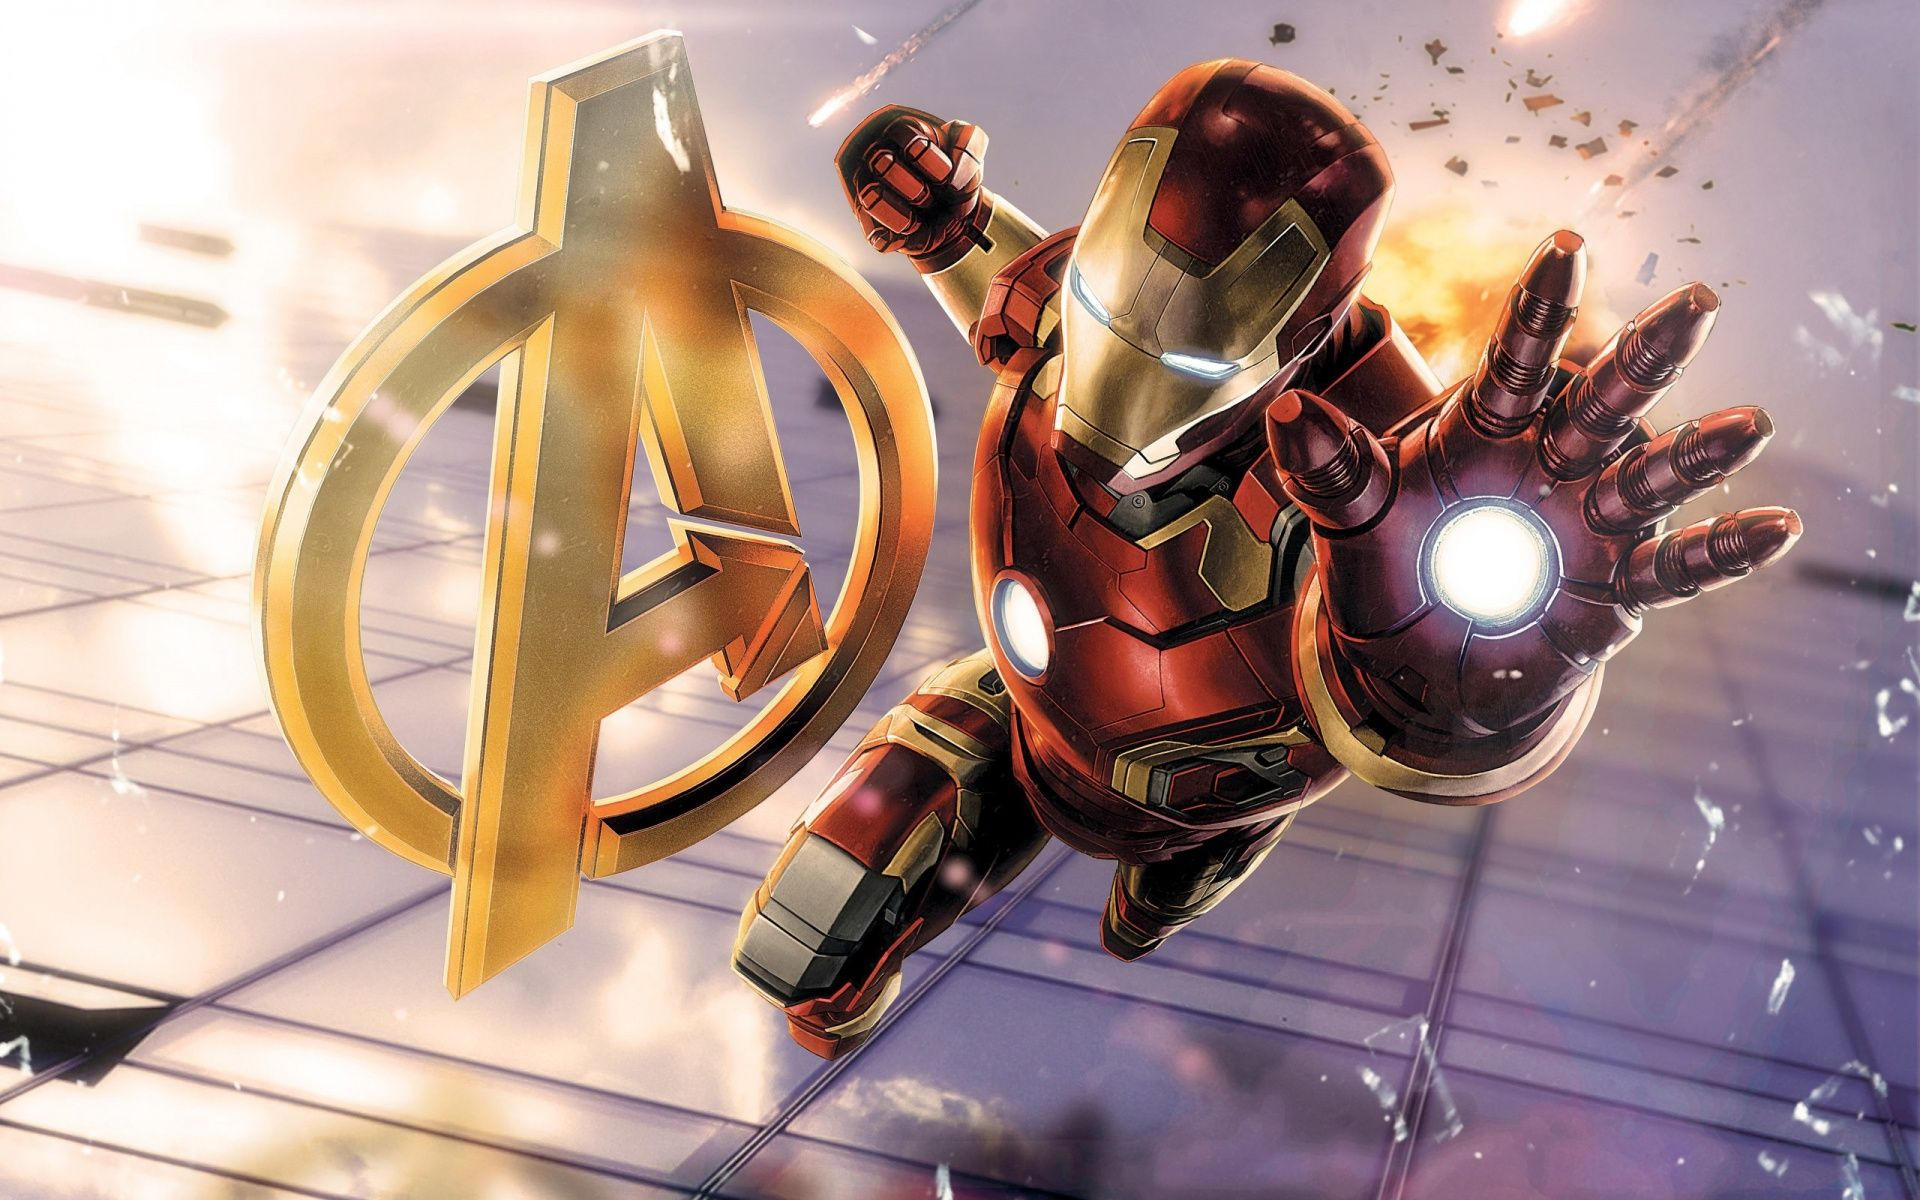 Download Iron Man Ultra Hd Wallpapers Gallery Iron Man Flying Iron Man Avengers Iron Man Wallpaper